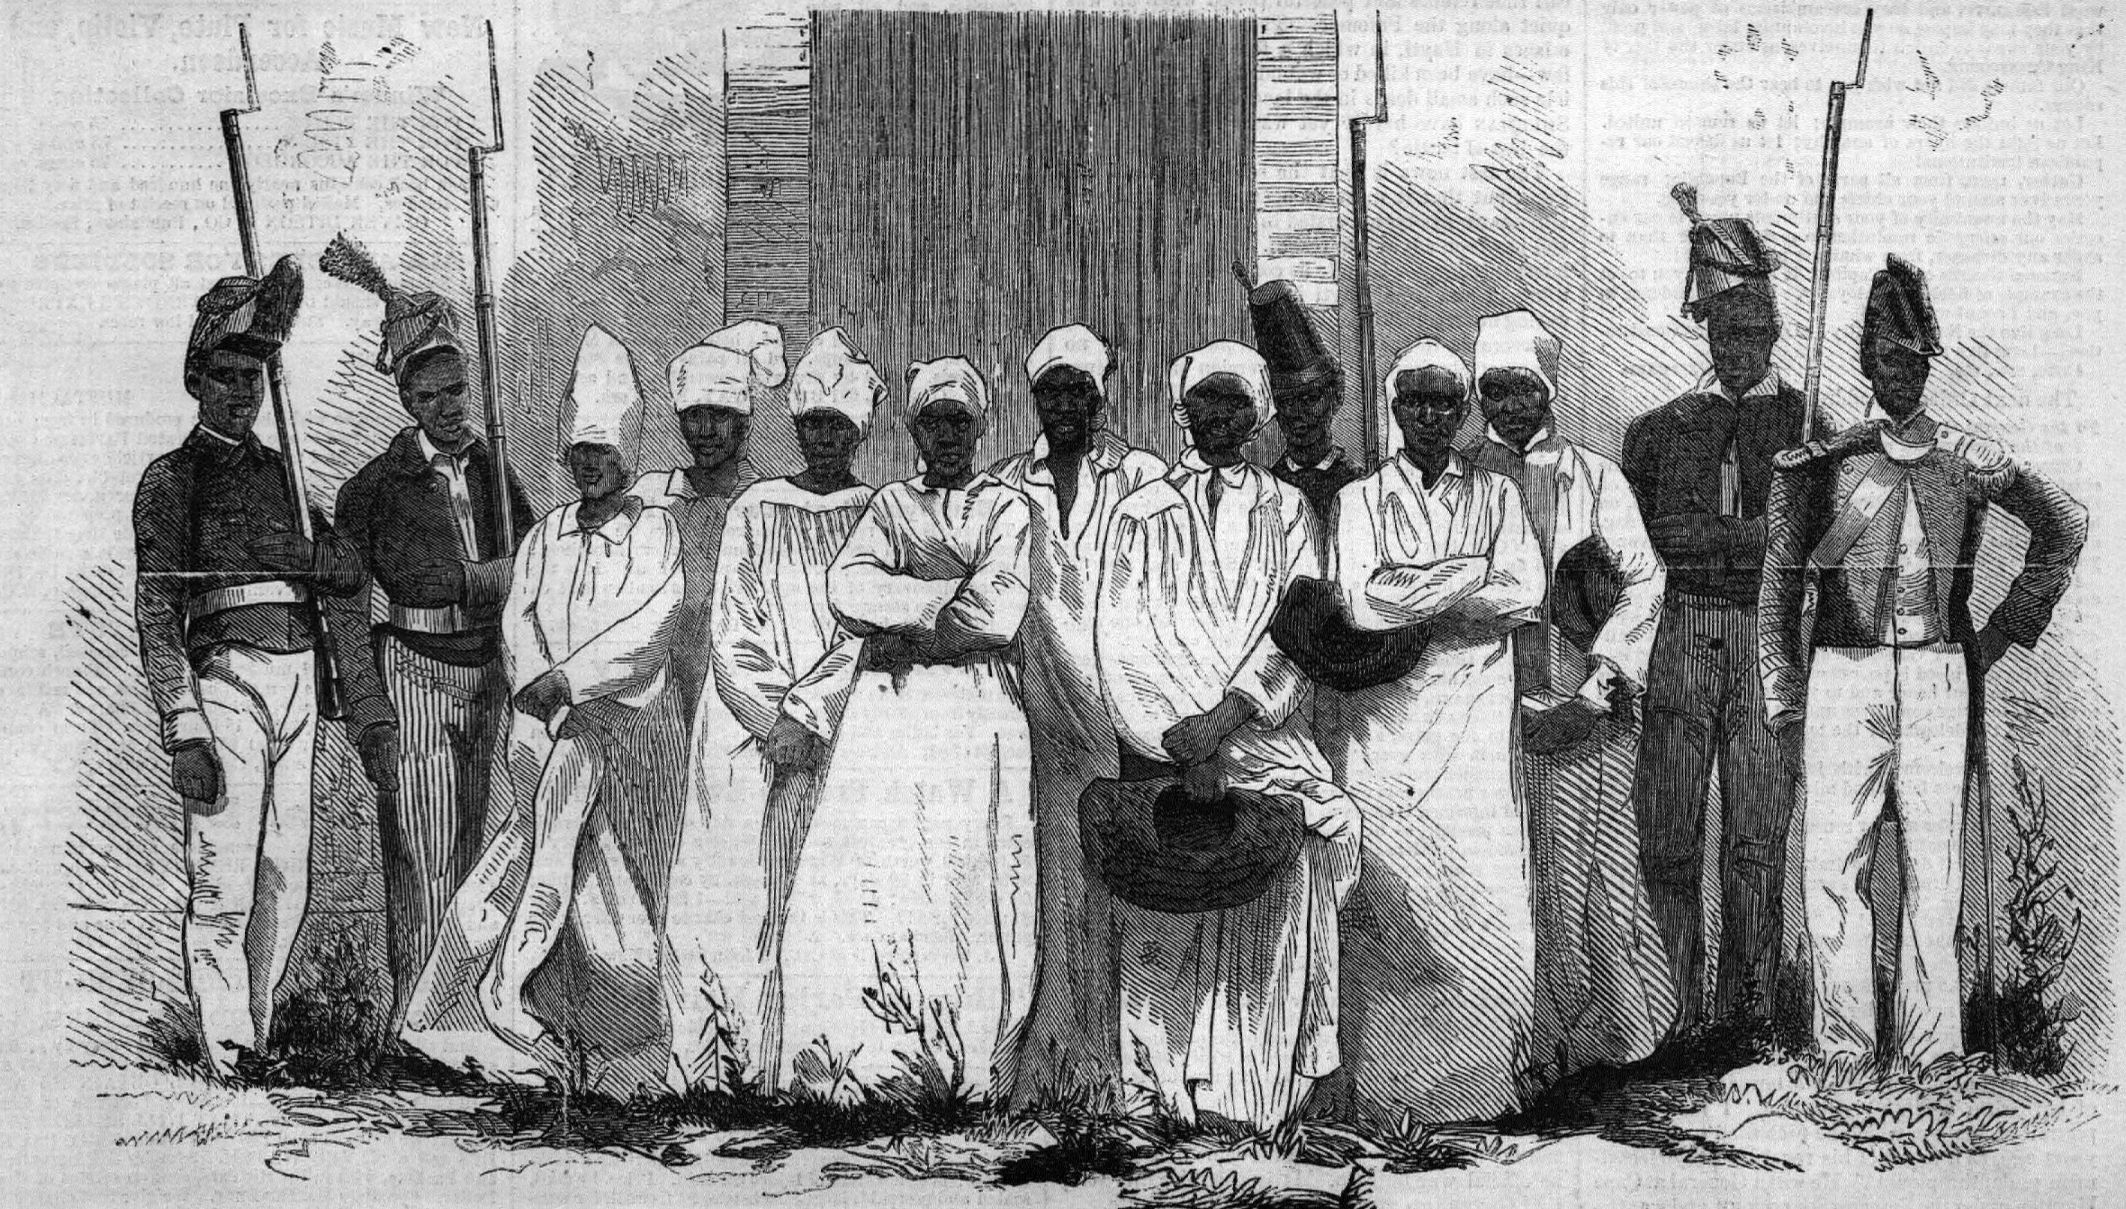 Caribbean Voodoo: The Trial That Gave Vodou A Bad Name